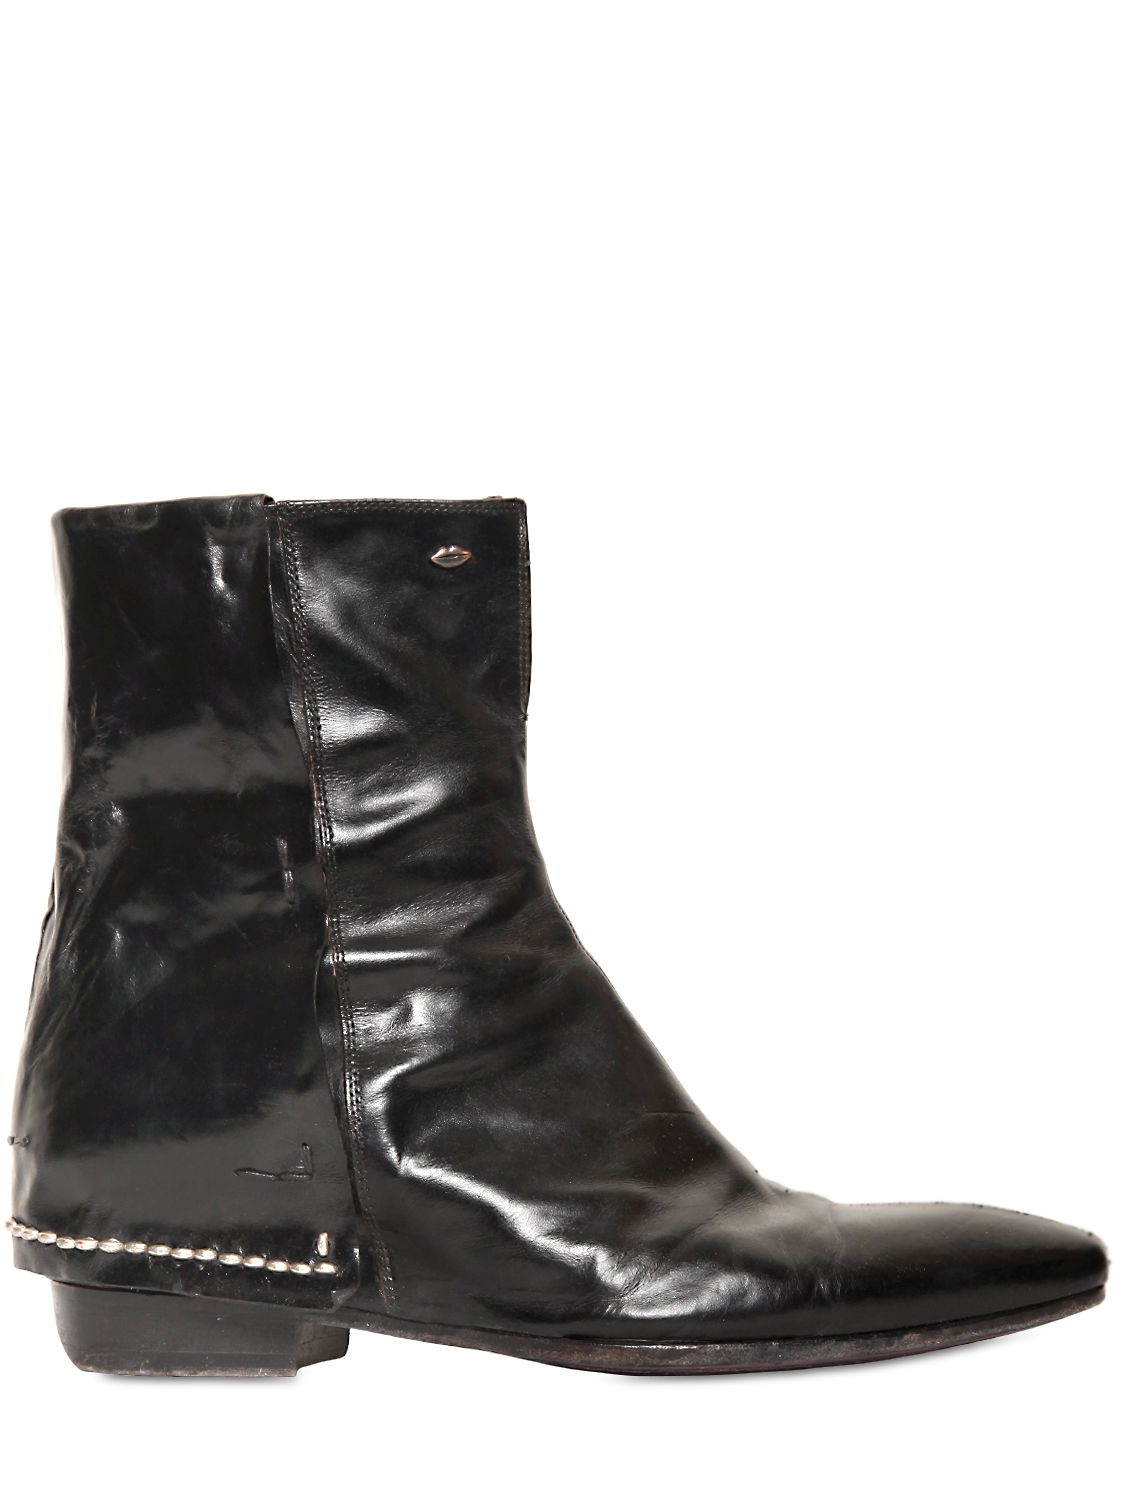 tom rebl vintage brushed leather boots in black for lyst